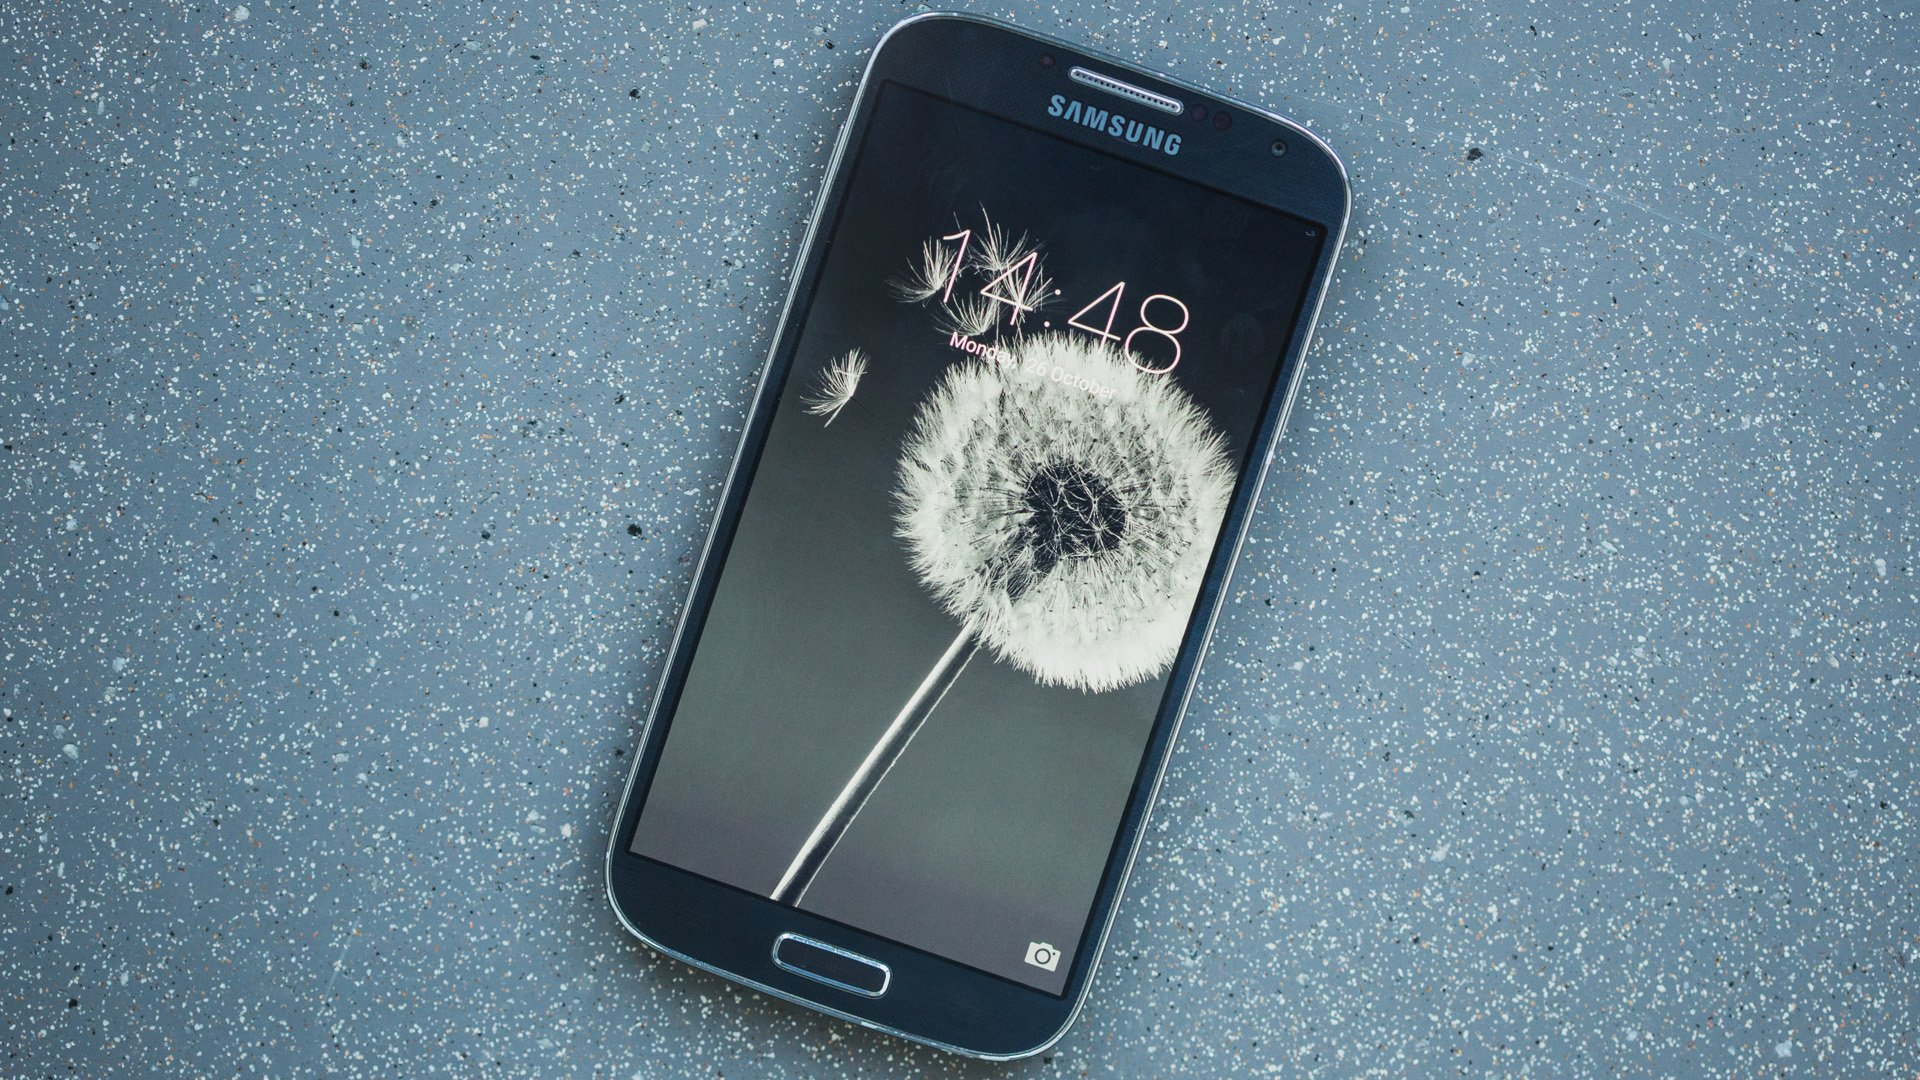 How To Fix Camera Failed Problem On Galaxy S4 Androidpit Samsung Zoom Black